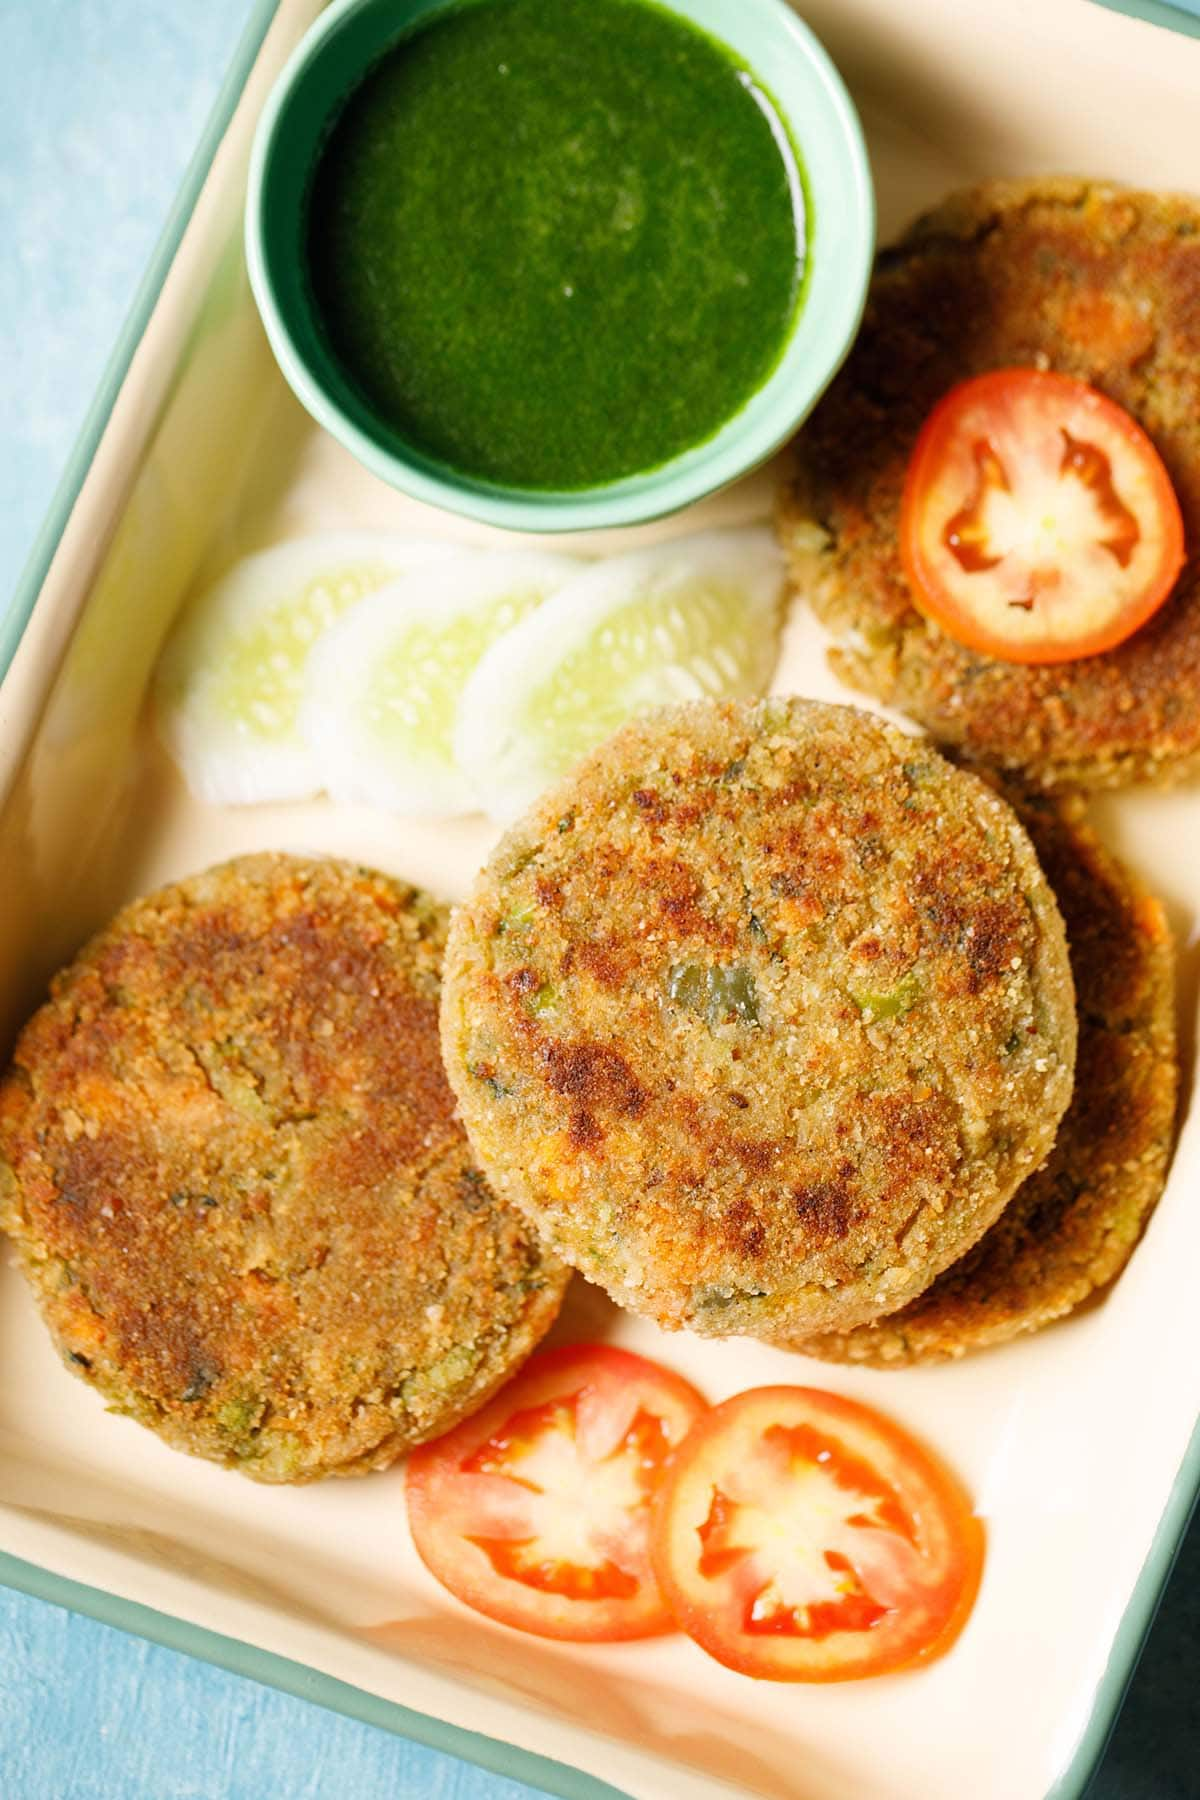 closeup shot of veg cutlet cutlet placed on a tray with a few slices of tomatoes, cucumber and a light green bowl filled with green chutney